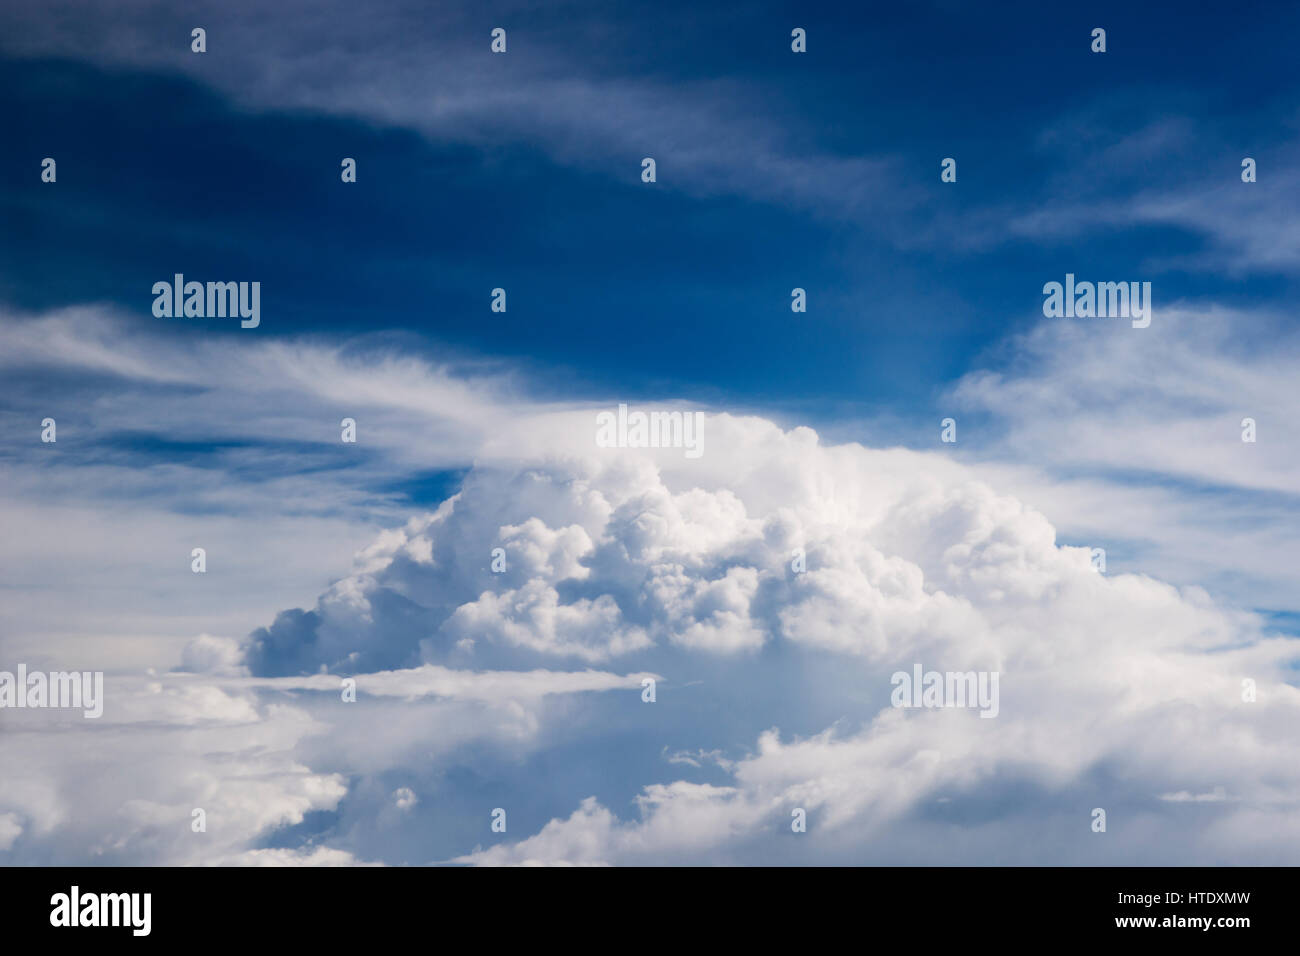 Airplane window seat view of big white thick fluffy clouds with a clear blue sky at the background in the afternoon. - Stock Image